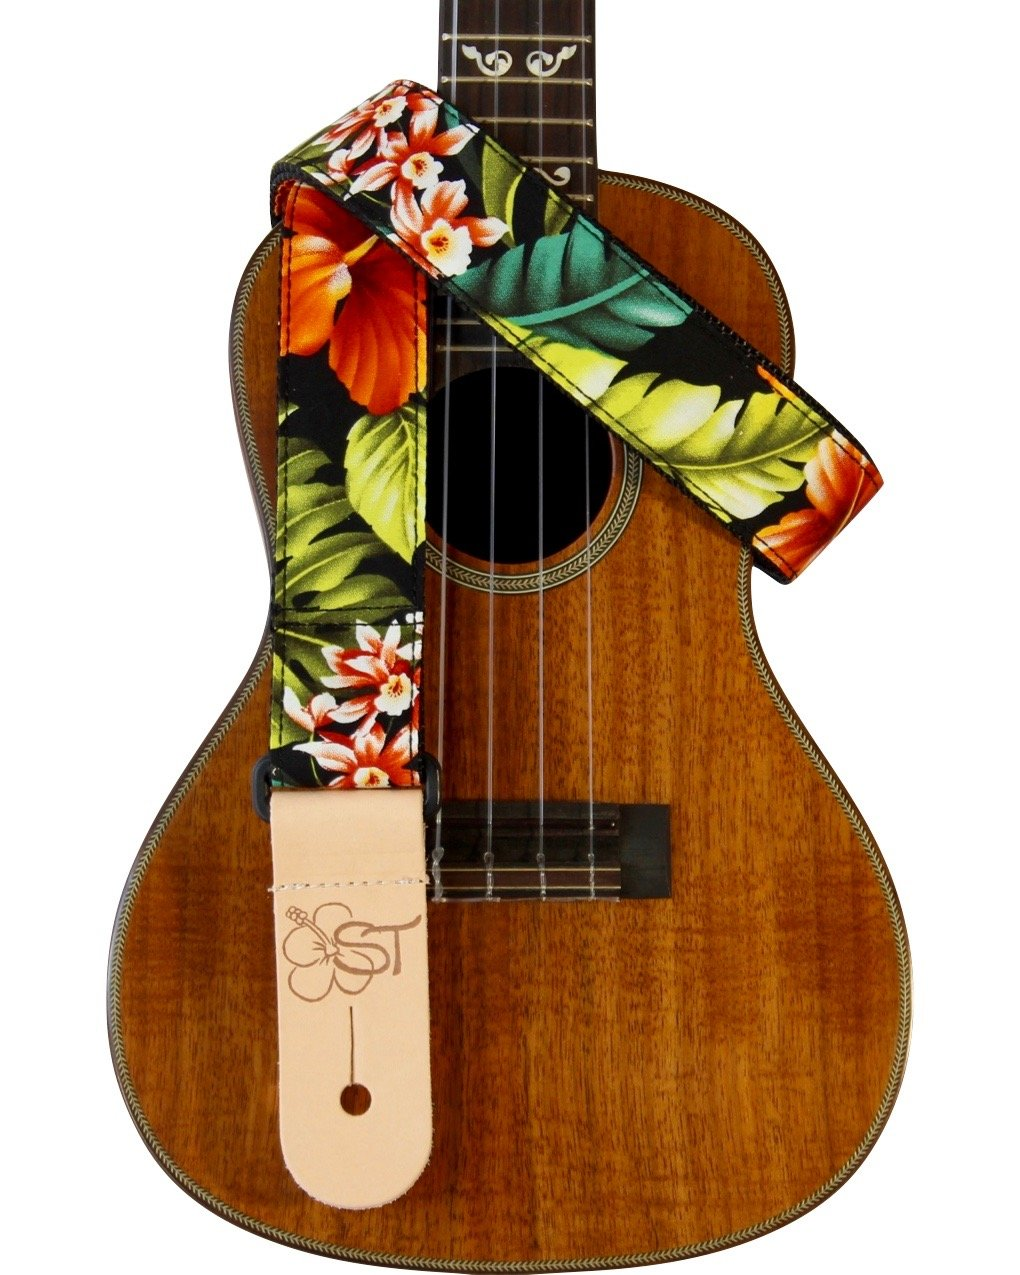 Sherrin's Threads 1.5 Hawaiian Print Ukulele Strap - Bird of Paradise